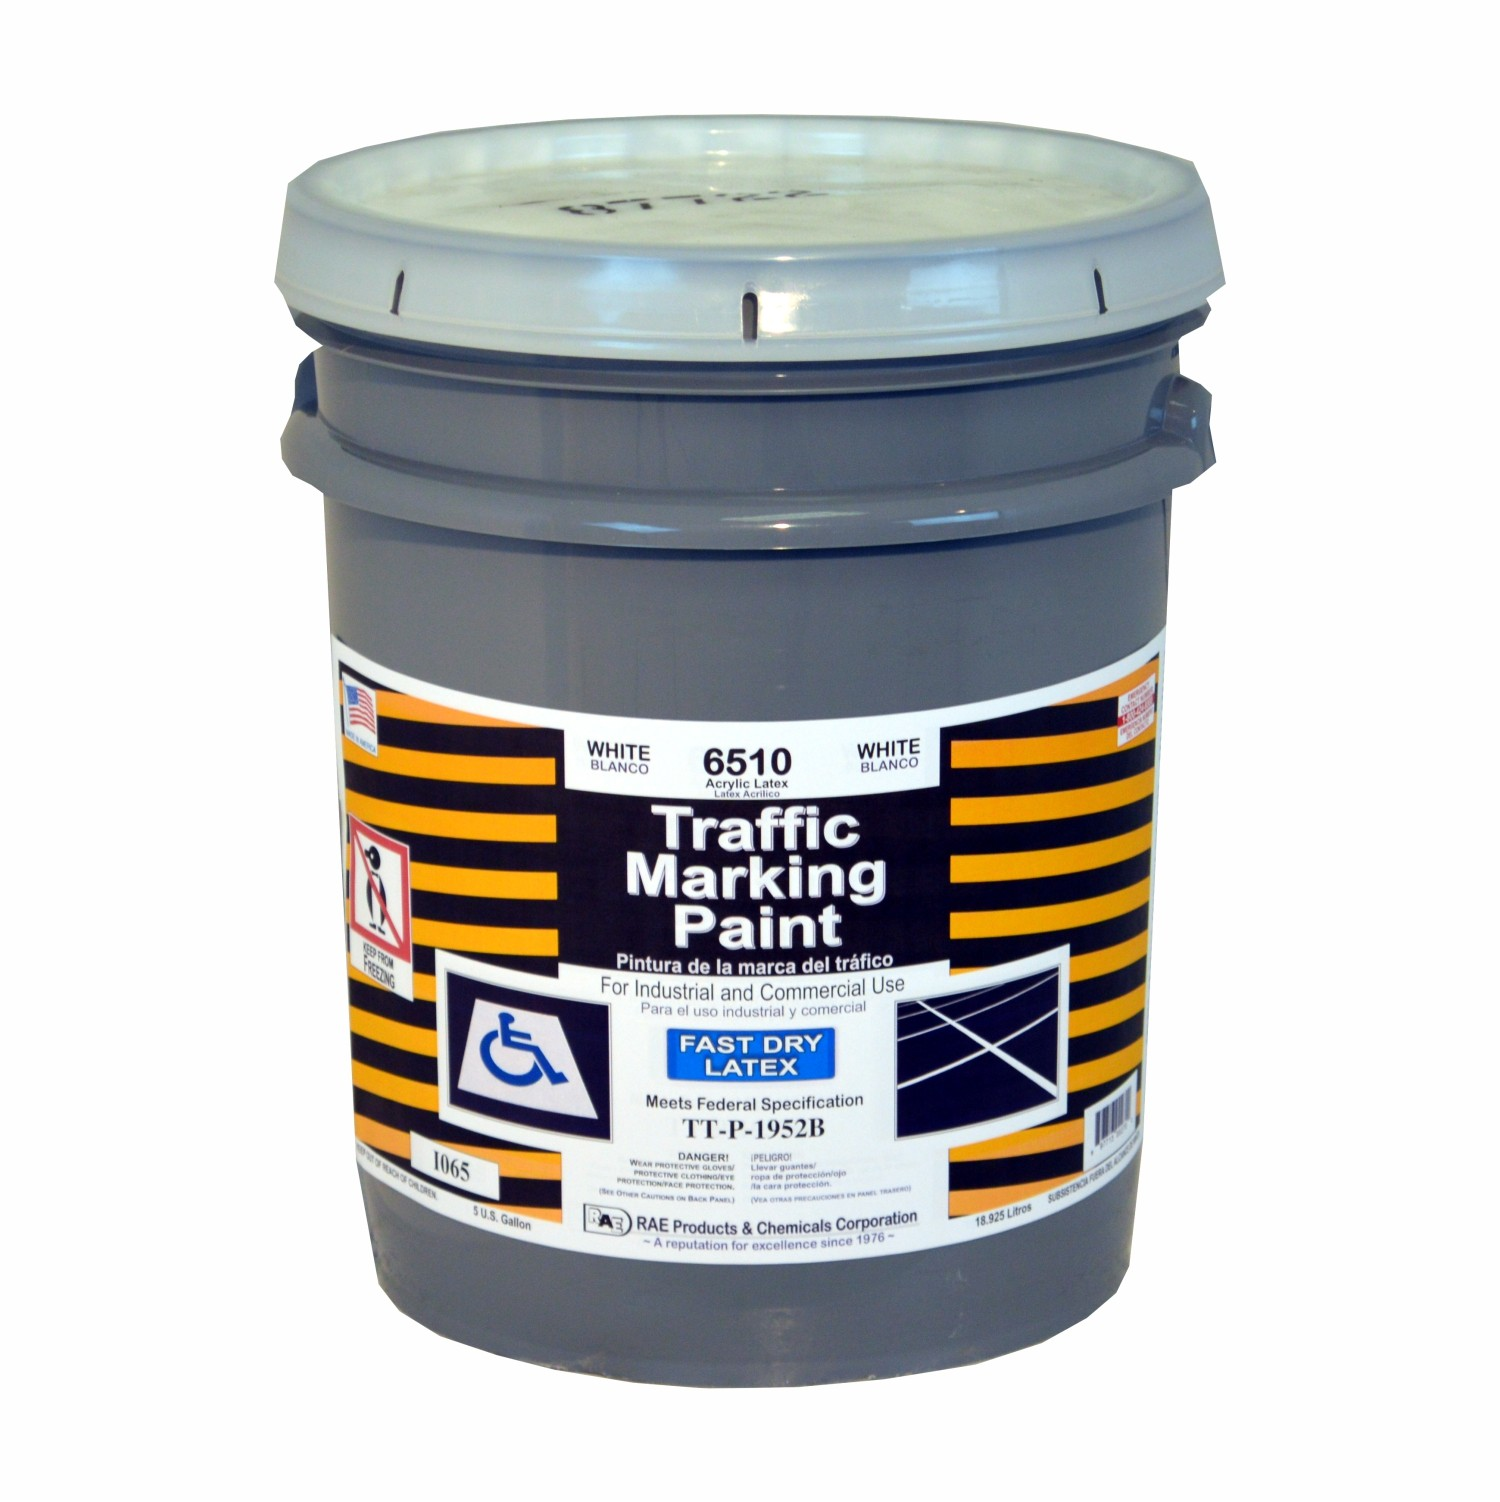 White Traffic Paint : Rae white gallon fast dry latex water based